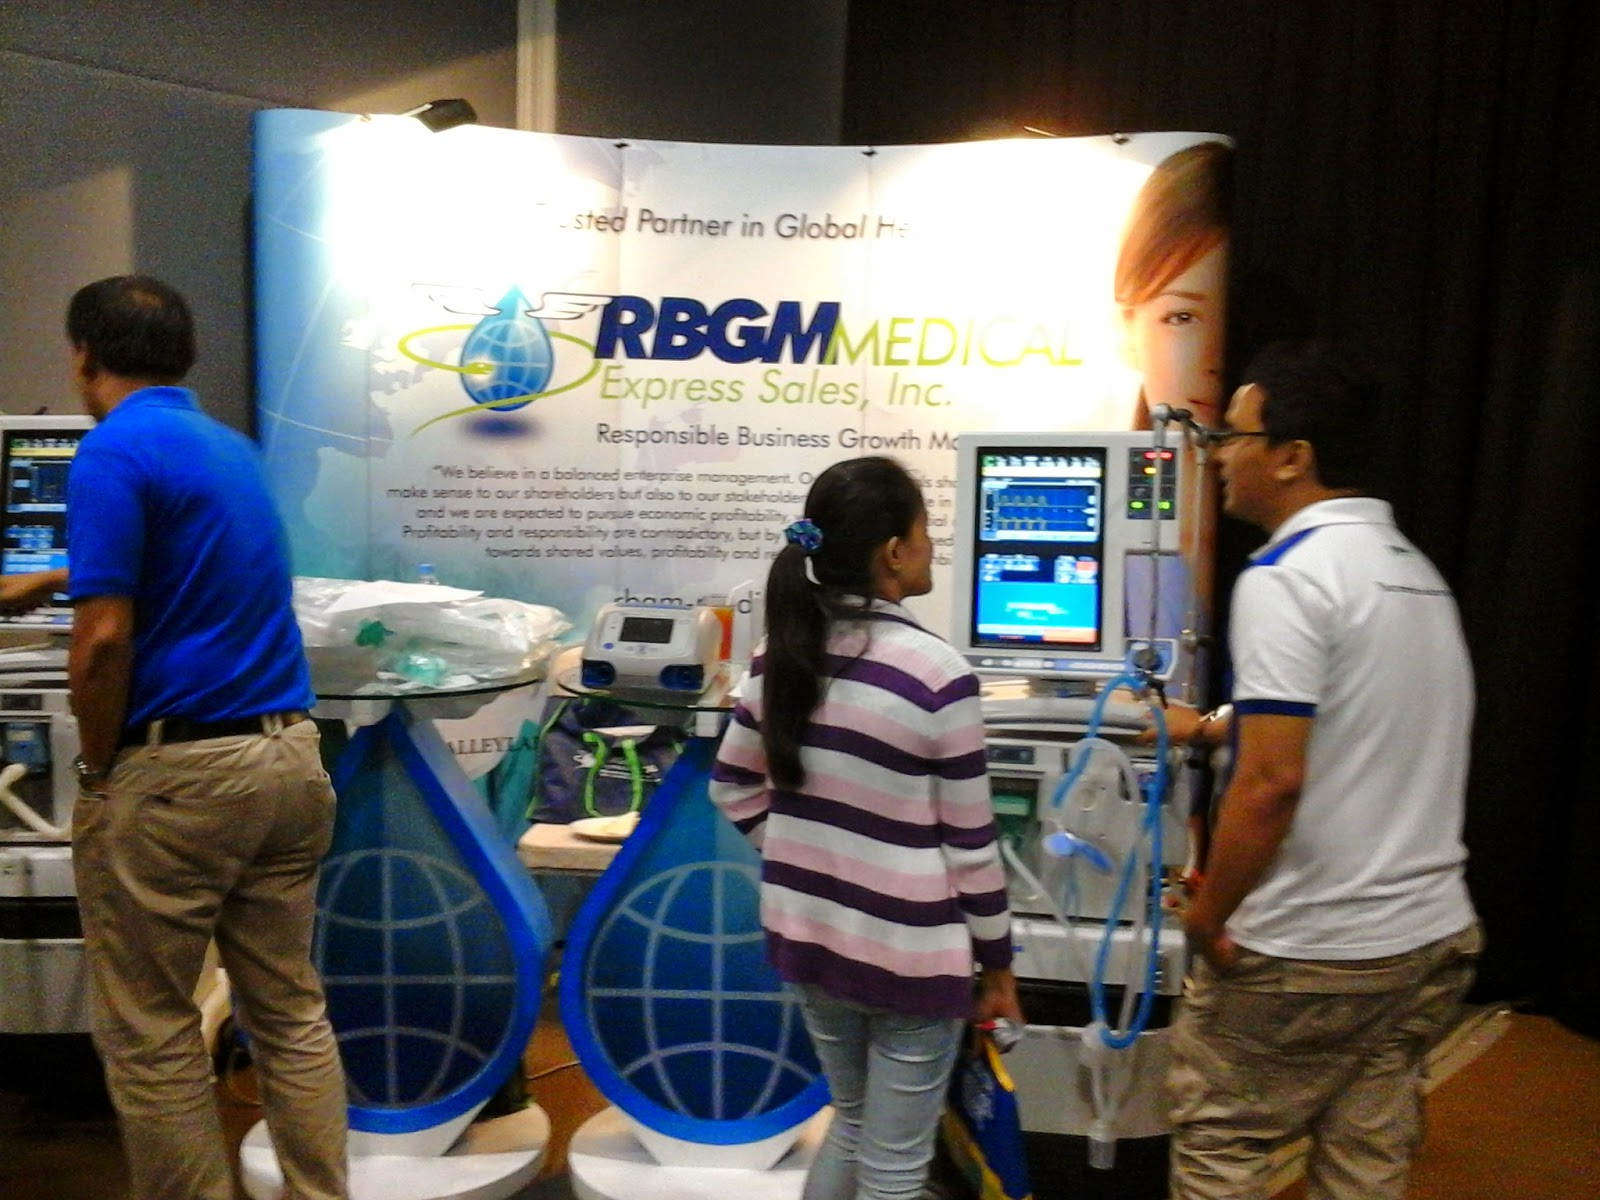 RBGM Medical Express Sales, Inc Exhibit Stand